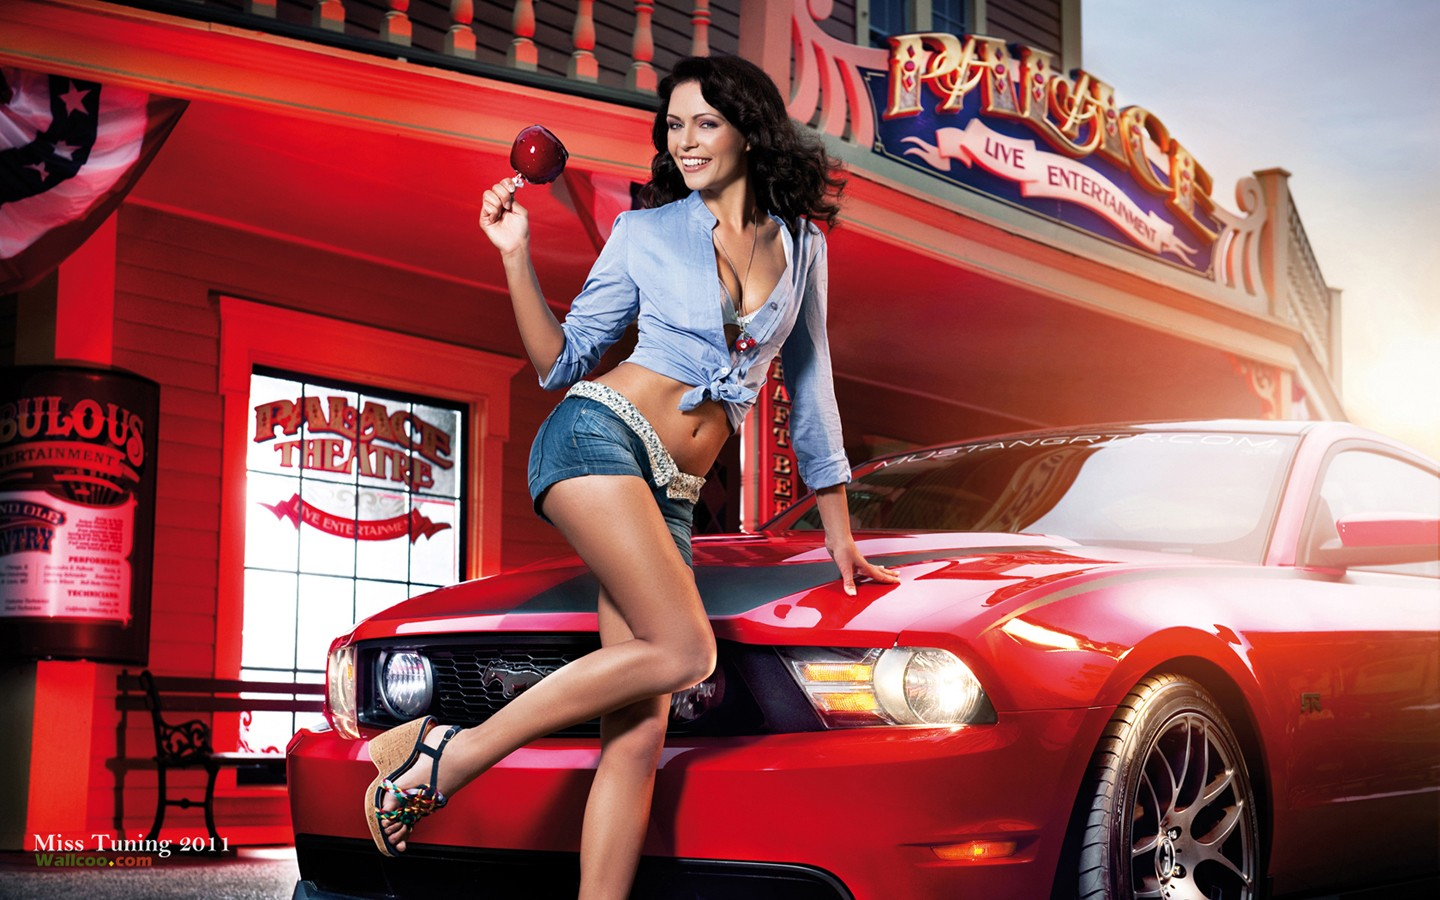 Germany modified car models girl Kristin Zippel wallpaper 30951